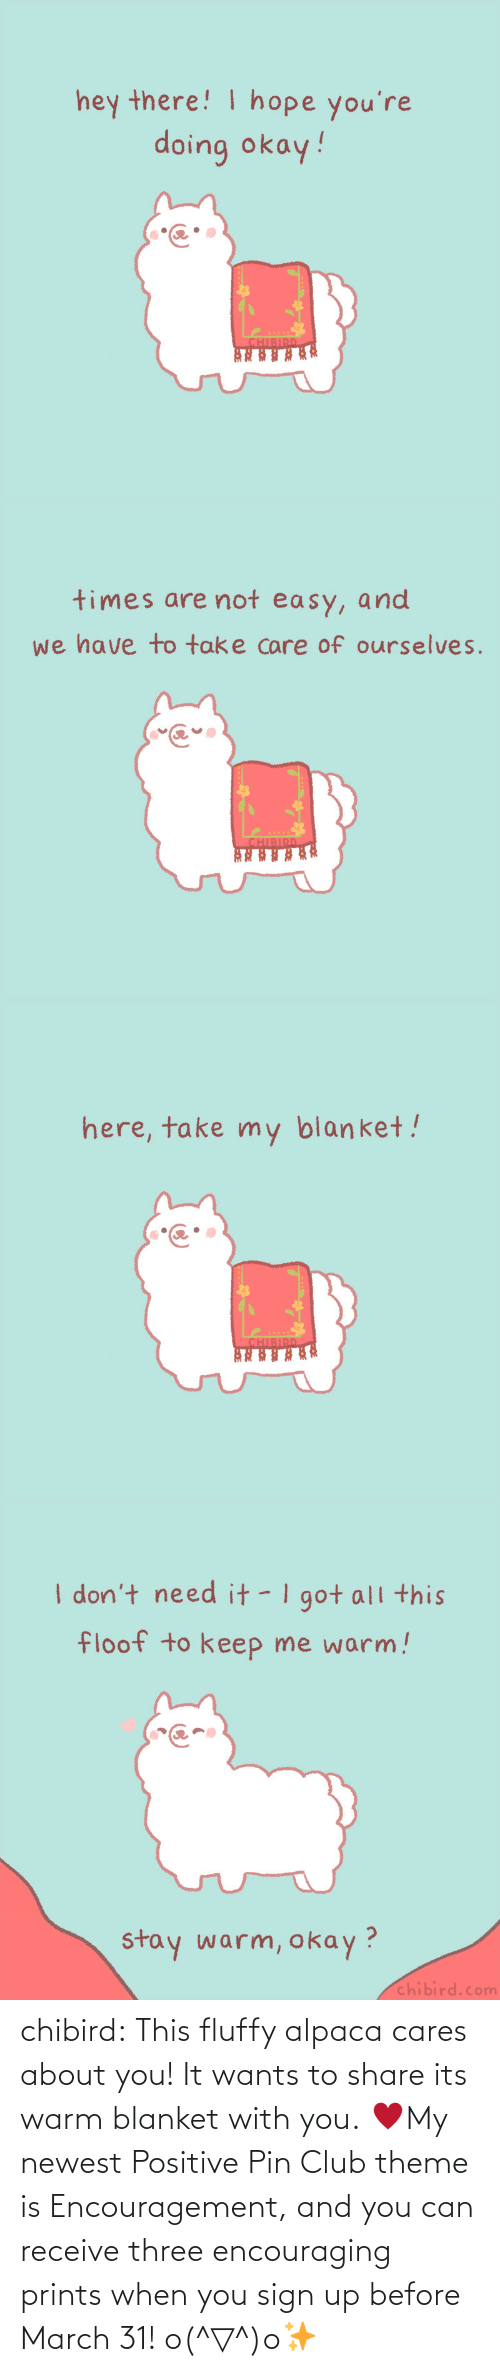 Receive: chibird:  This fluffy alpaca cares about you! It wants to share its warm blanket with you. ♥My newest Positive Pin Club theme is Encouragement, and you can receive three encouraging prints when you sign up before March 31! o(^▽^)o✨